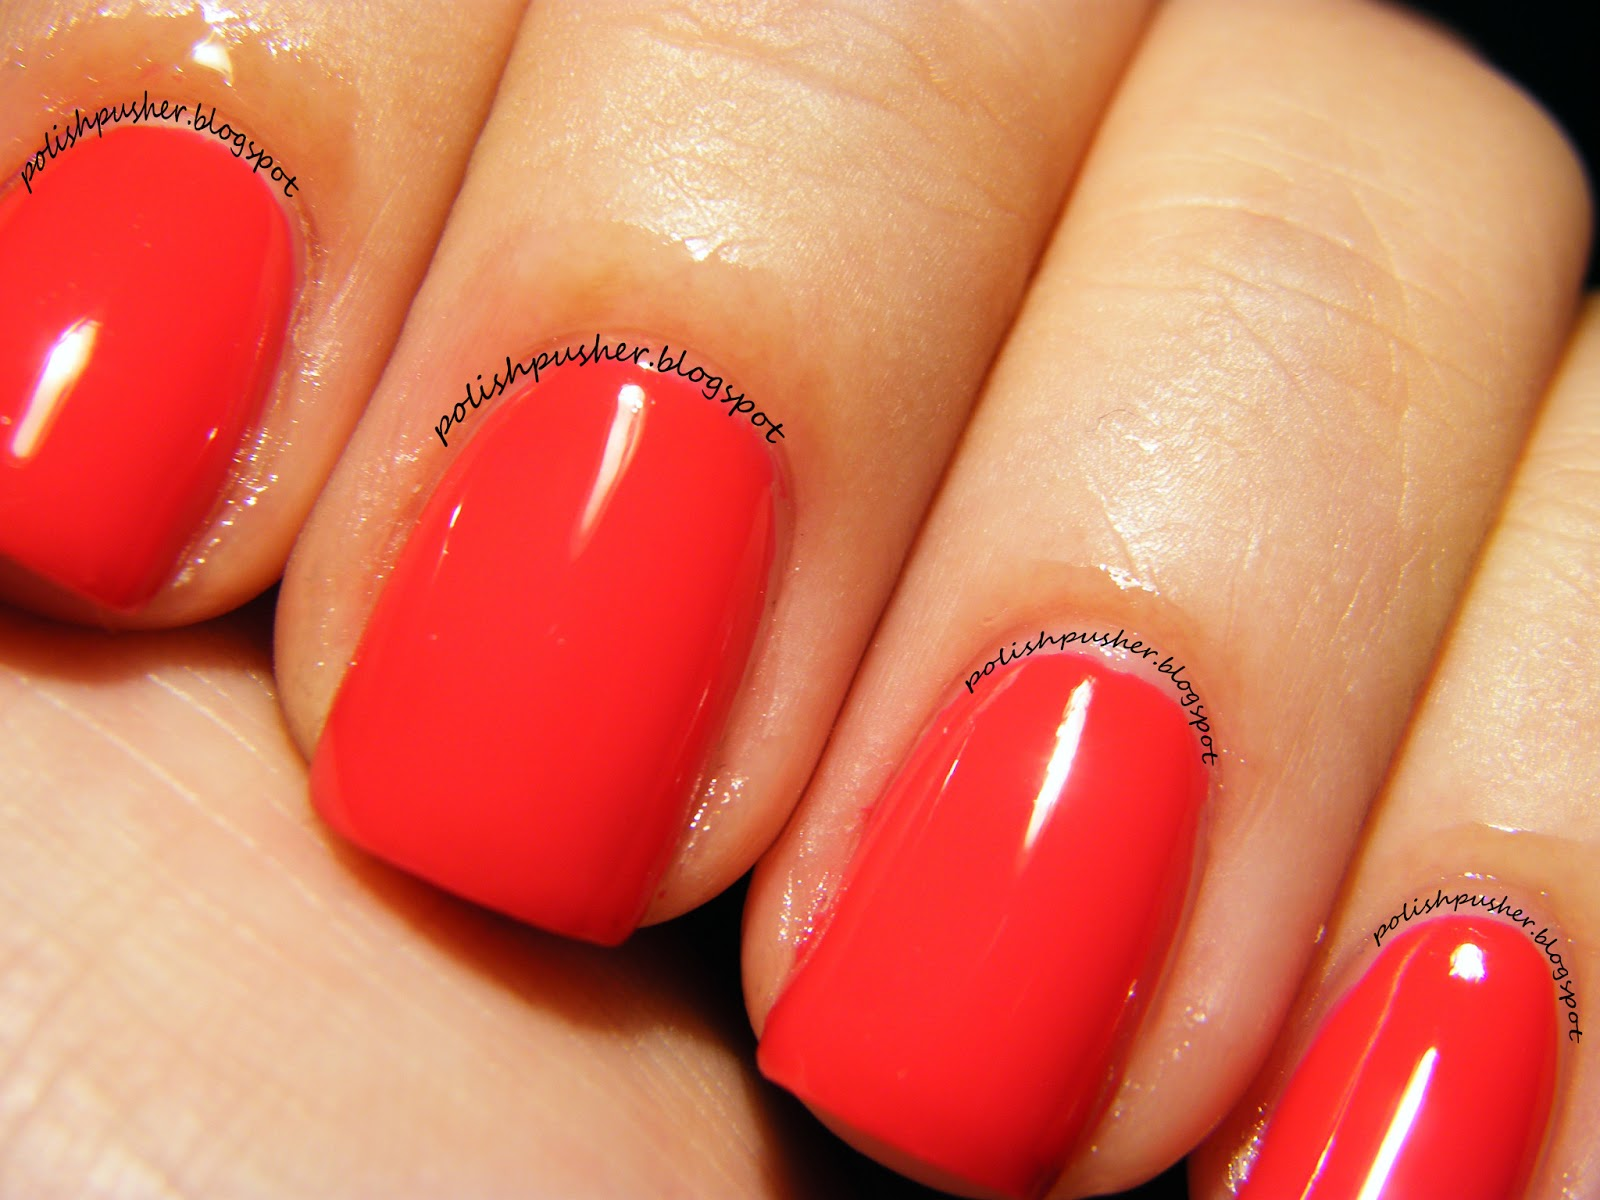 Flower beauty power polish pusher first off let me just say that i have had a long lasting love affair with red nail polish so when i find a good one i fall hard izmirmasajfo